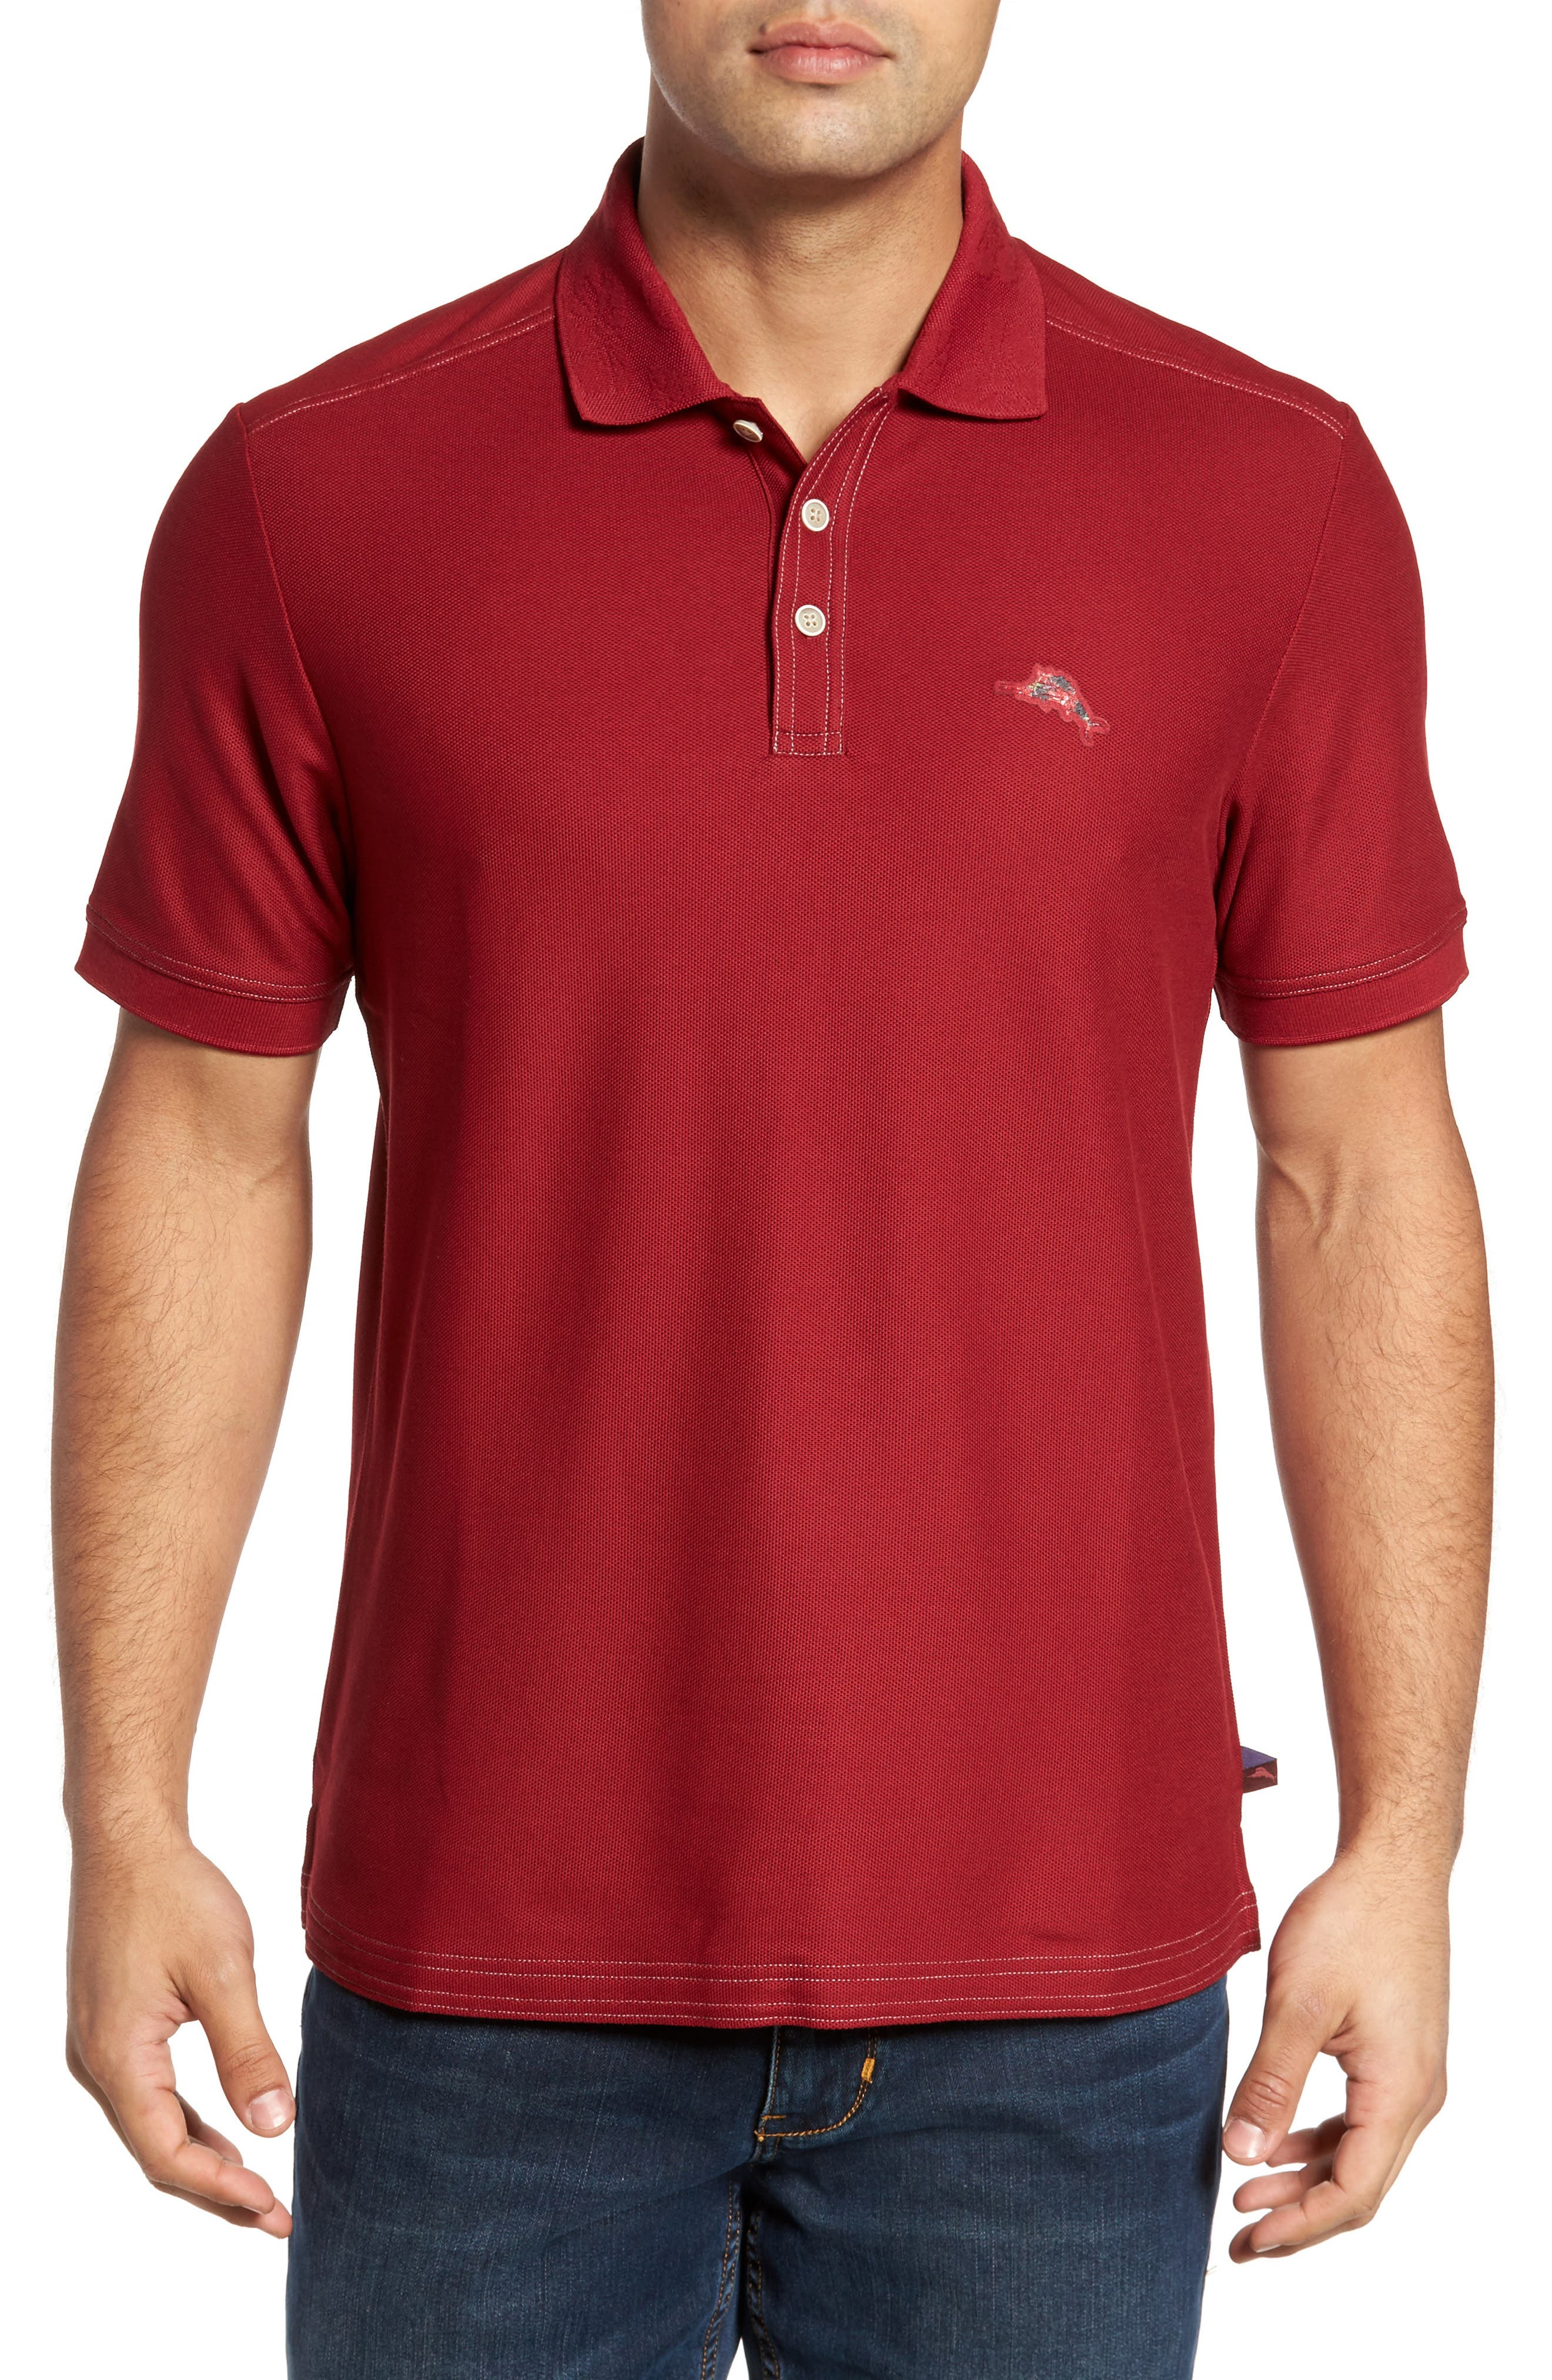 Alternate Image 1 Selected - Tommy Bahama Limited Edition Poinsettia Emfielder Piqué Polo